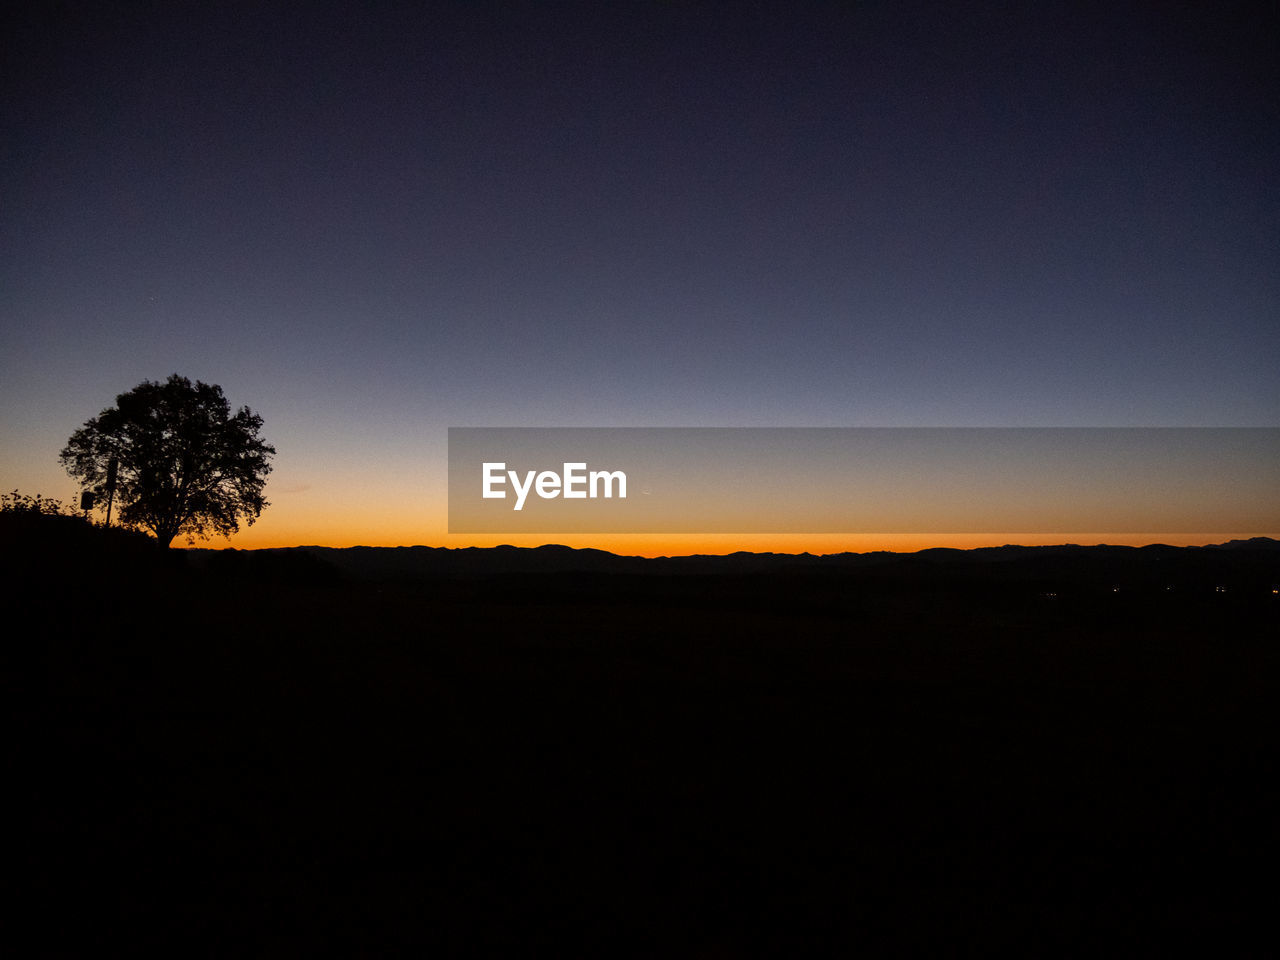 sky, silhouette, copy space, beauty in nature, environment, tranquility, tree, landscape, tranquil scene, scenics - nature, sunset, clear sky, nature, no people, non-urban scene, plant, land, idyllic, outdoors, orange color, dark